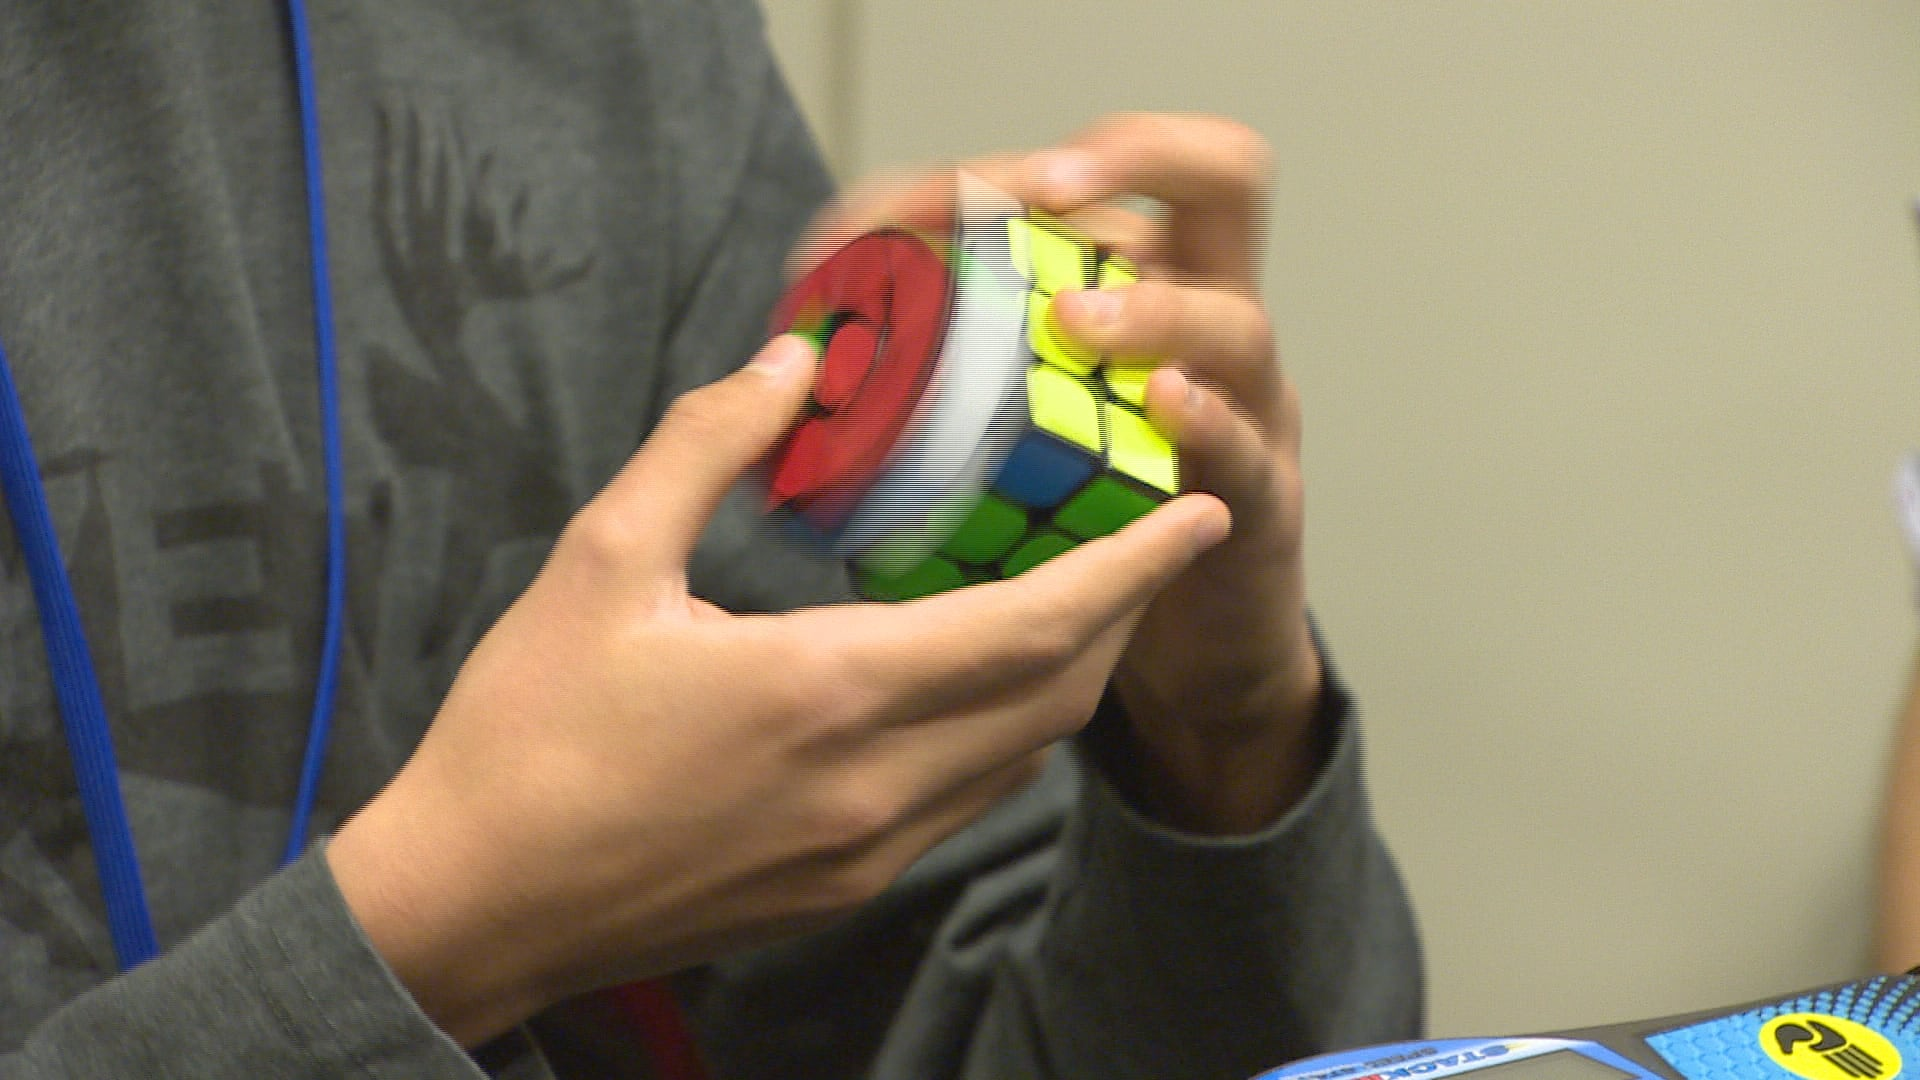 Rubik's Cube Montreal Vancouver Rubik S Cube Tournament Lures Some Of Puzzle S Fastest